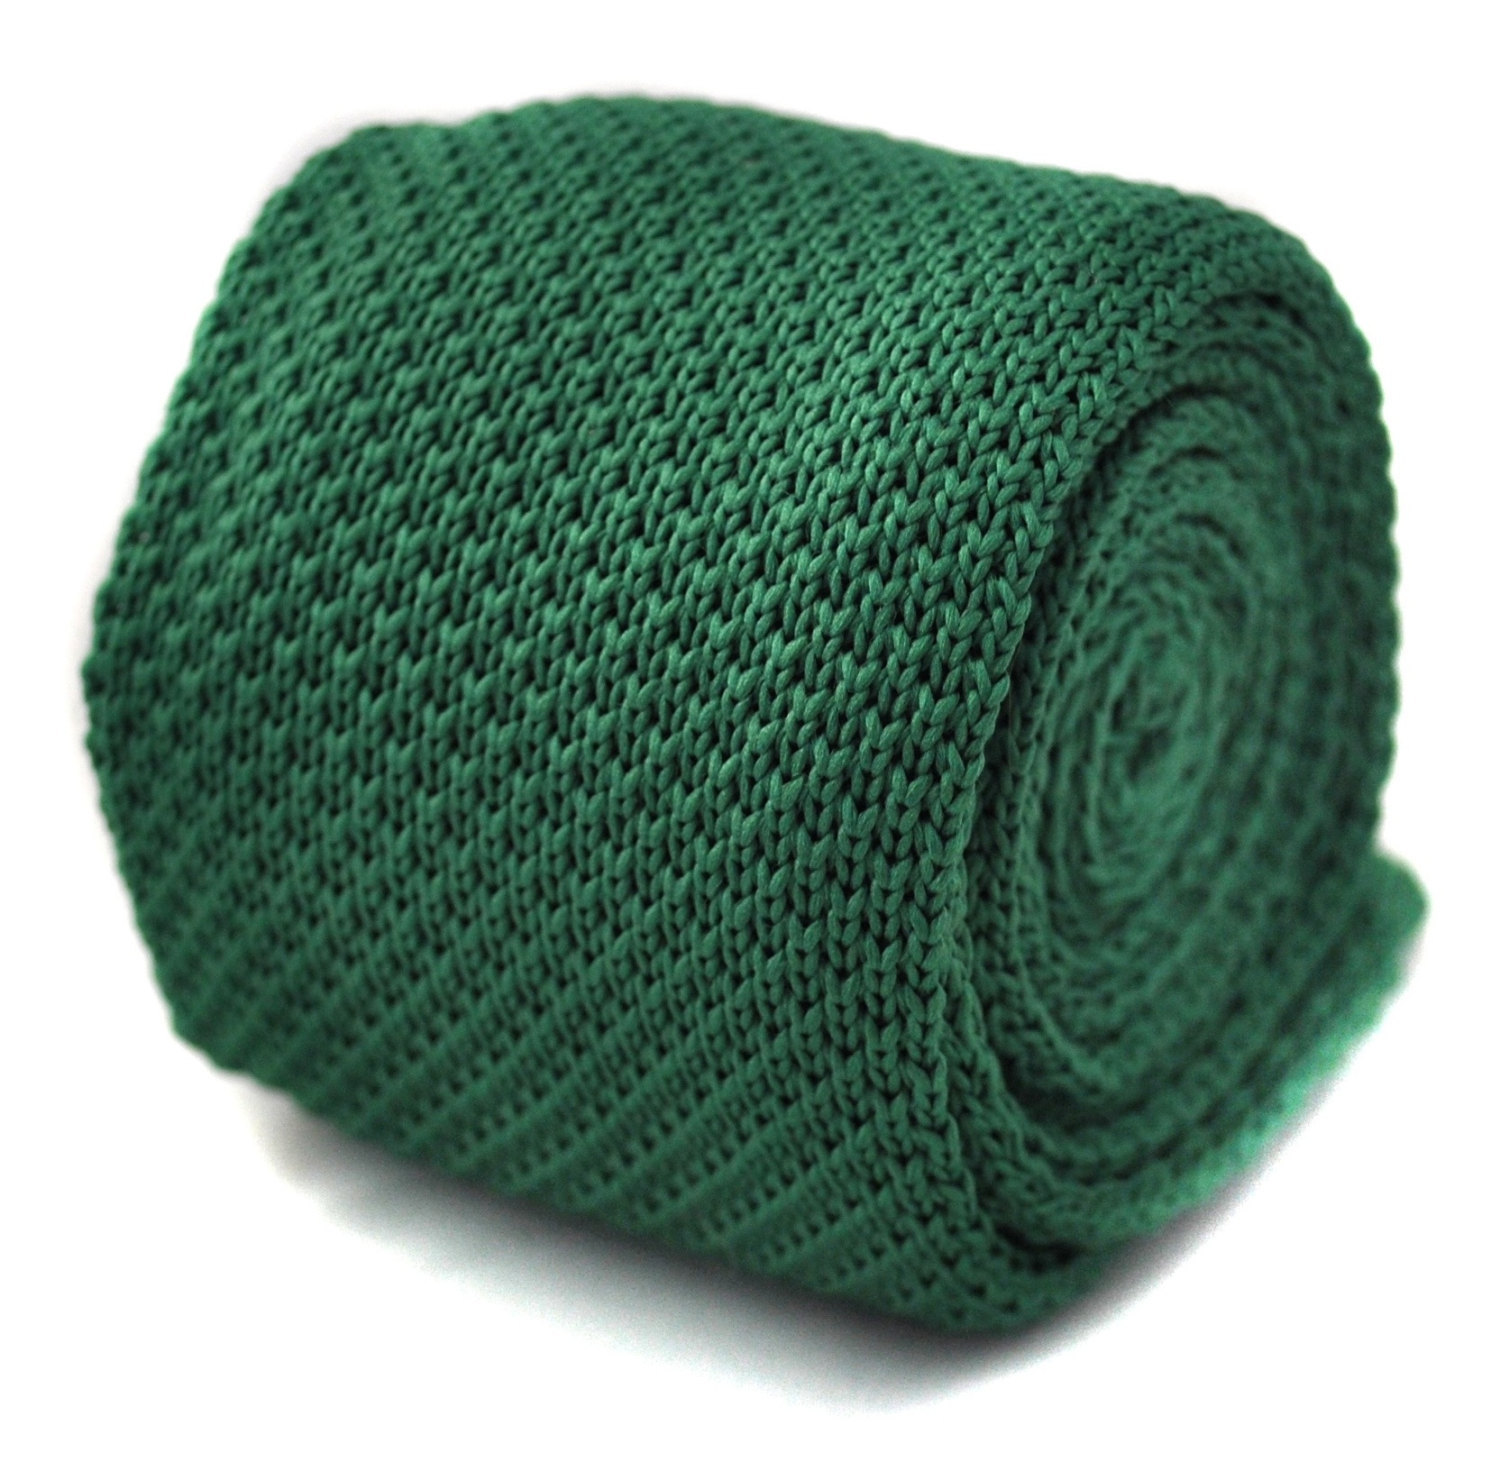 Courier for Plain dark green knitted skinny tie with pointed end by Frederick Th